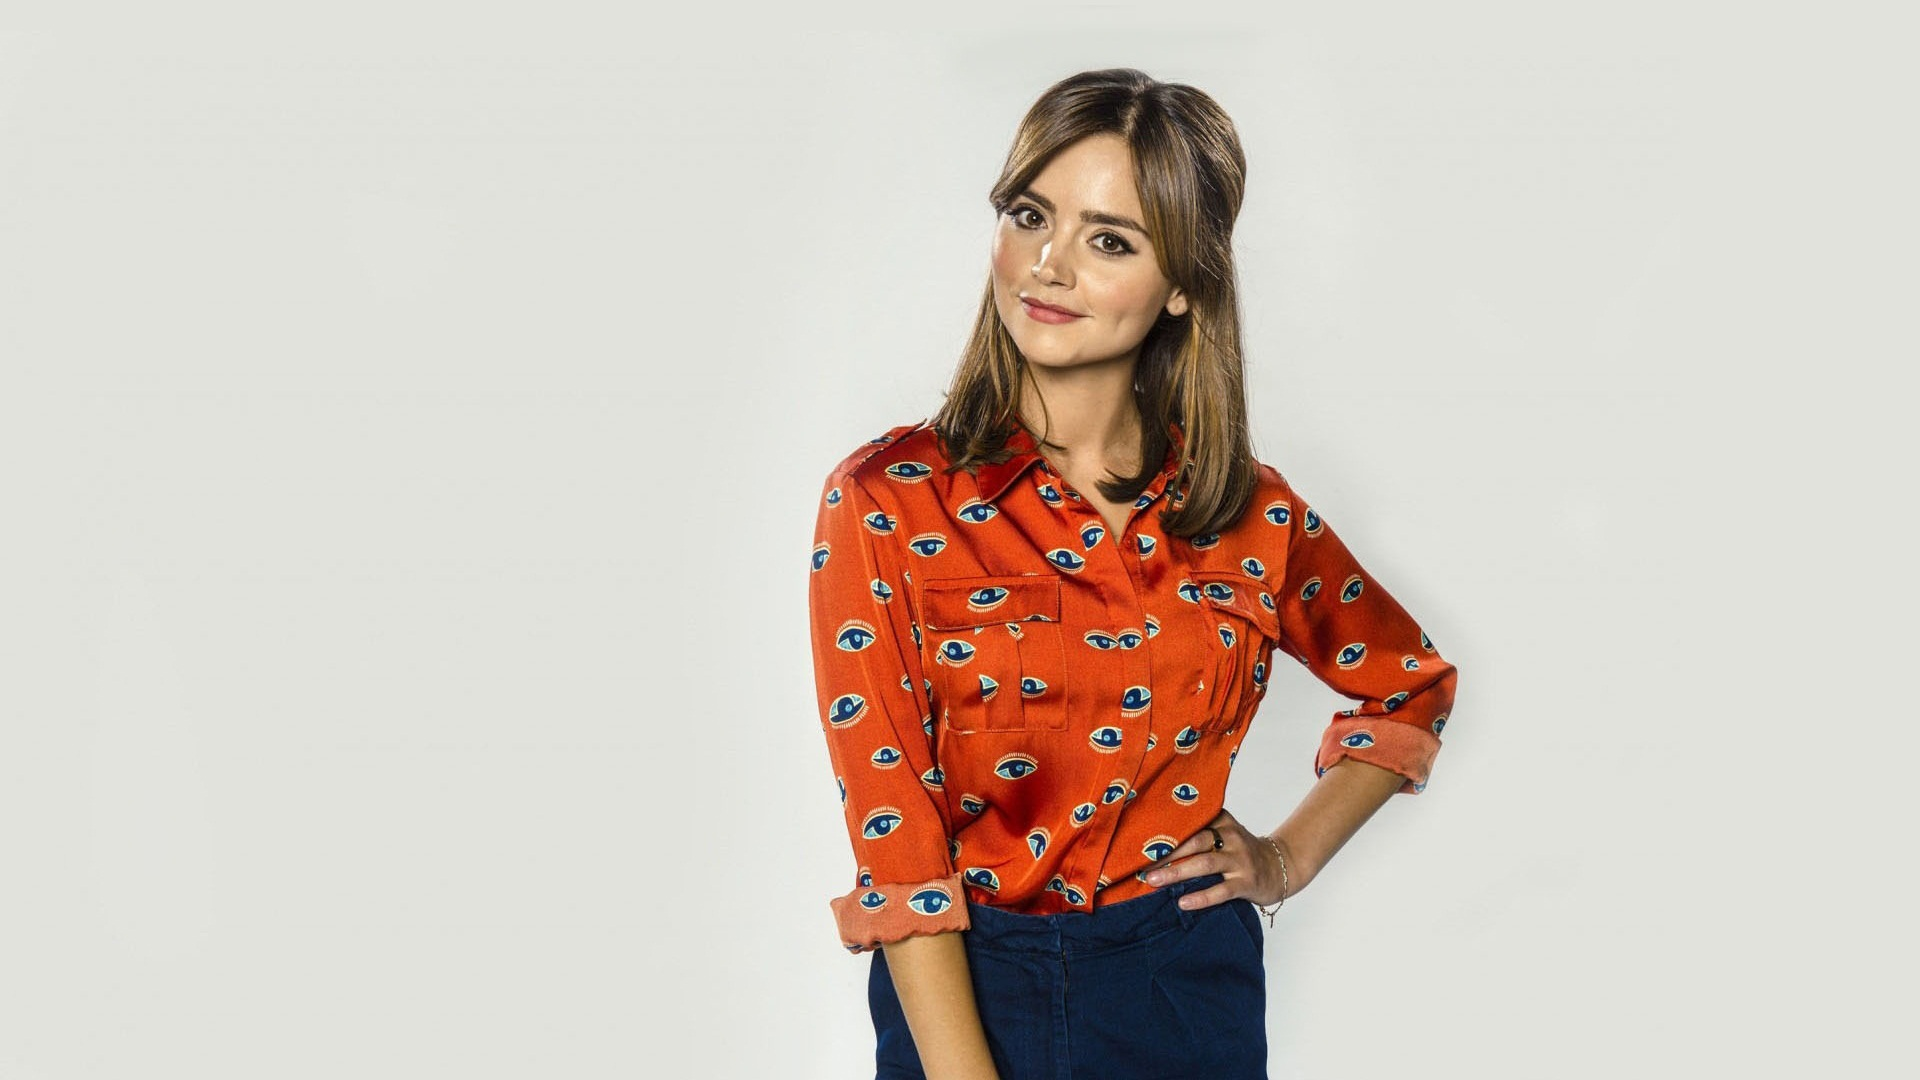 1920x1080 - Jenna-Louise Coleman Wallpapers 9